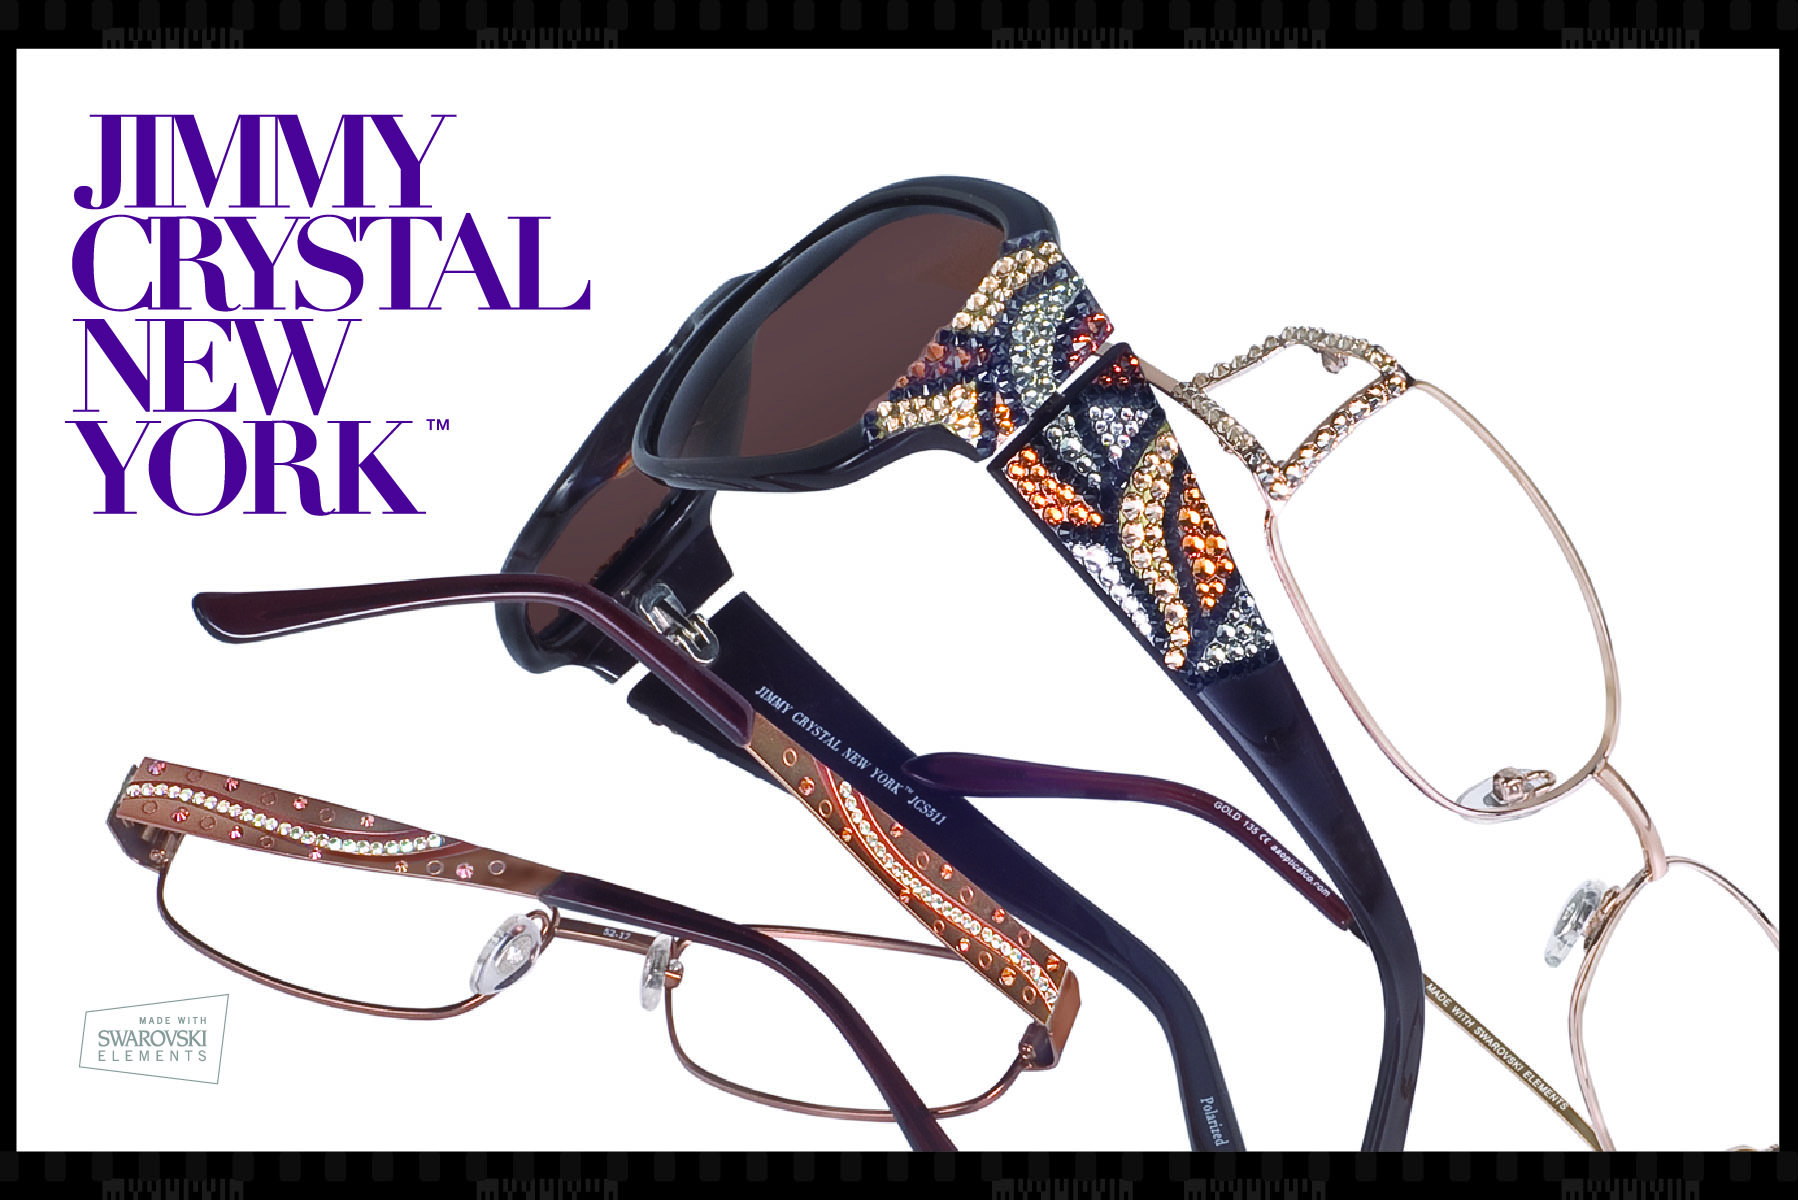 New Dazzling Eyewear And Sunglasses From Jimmy Crystal New